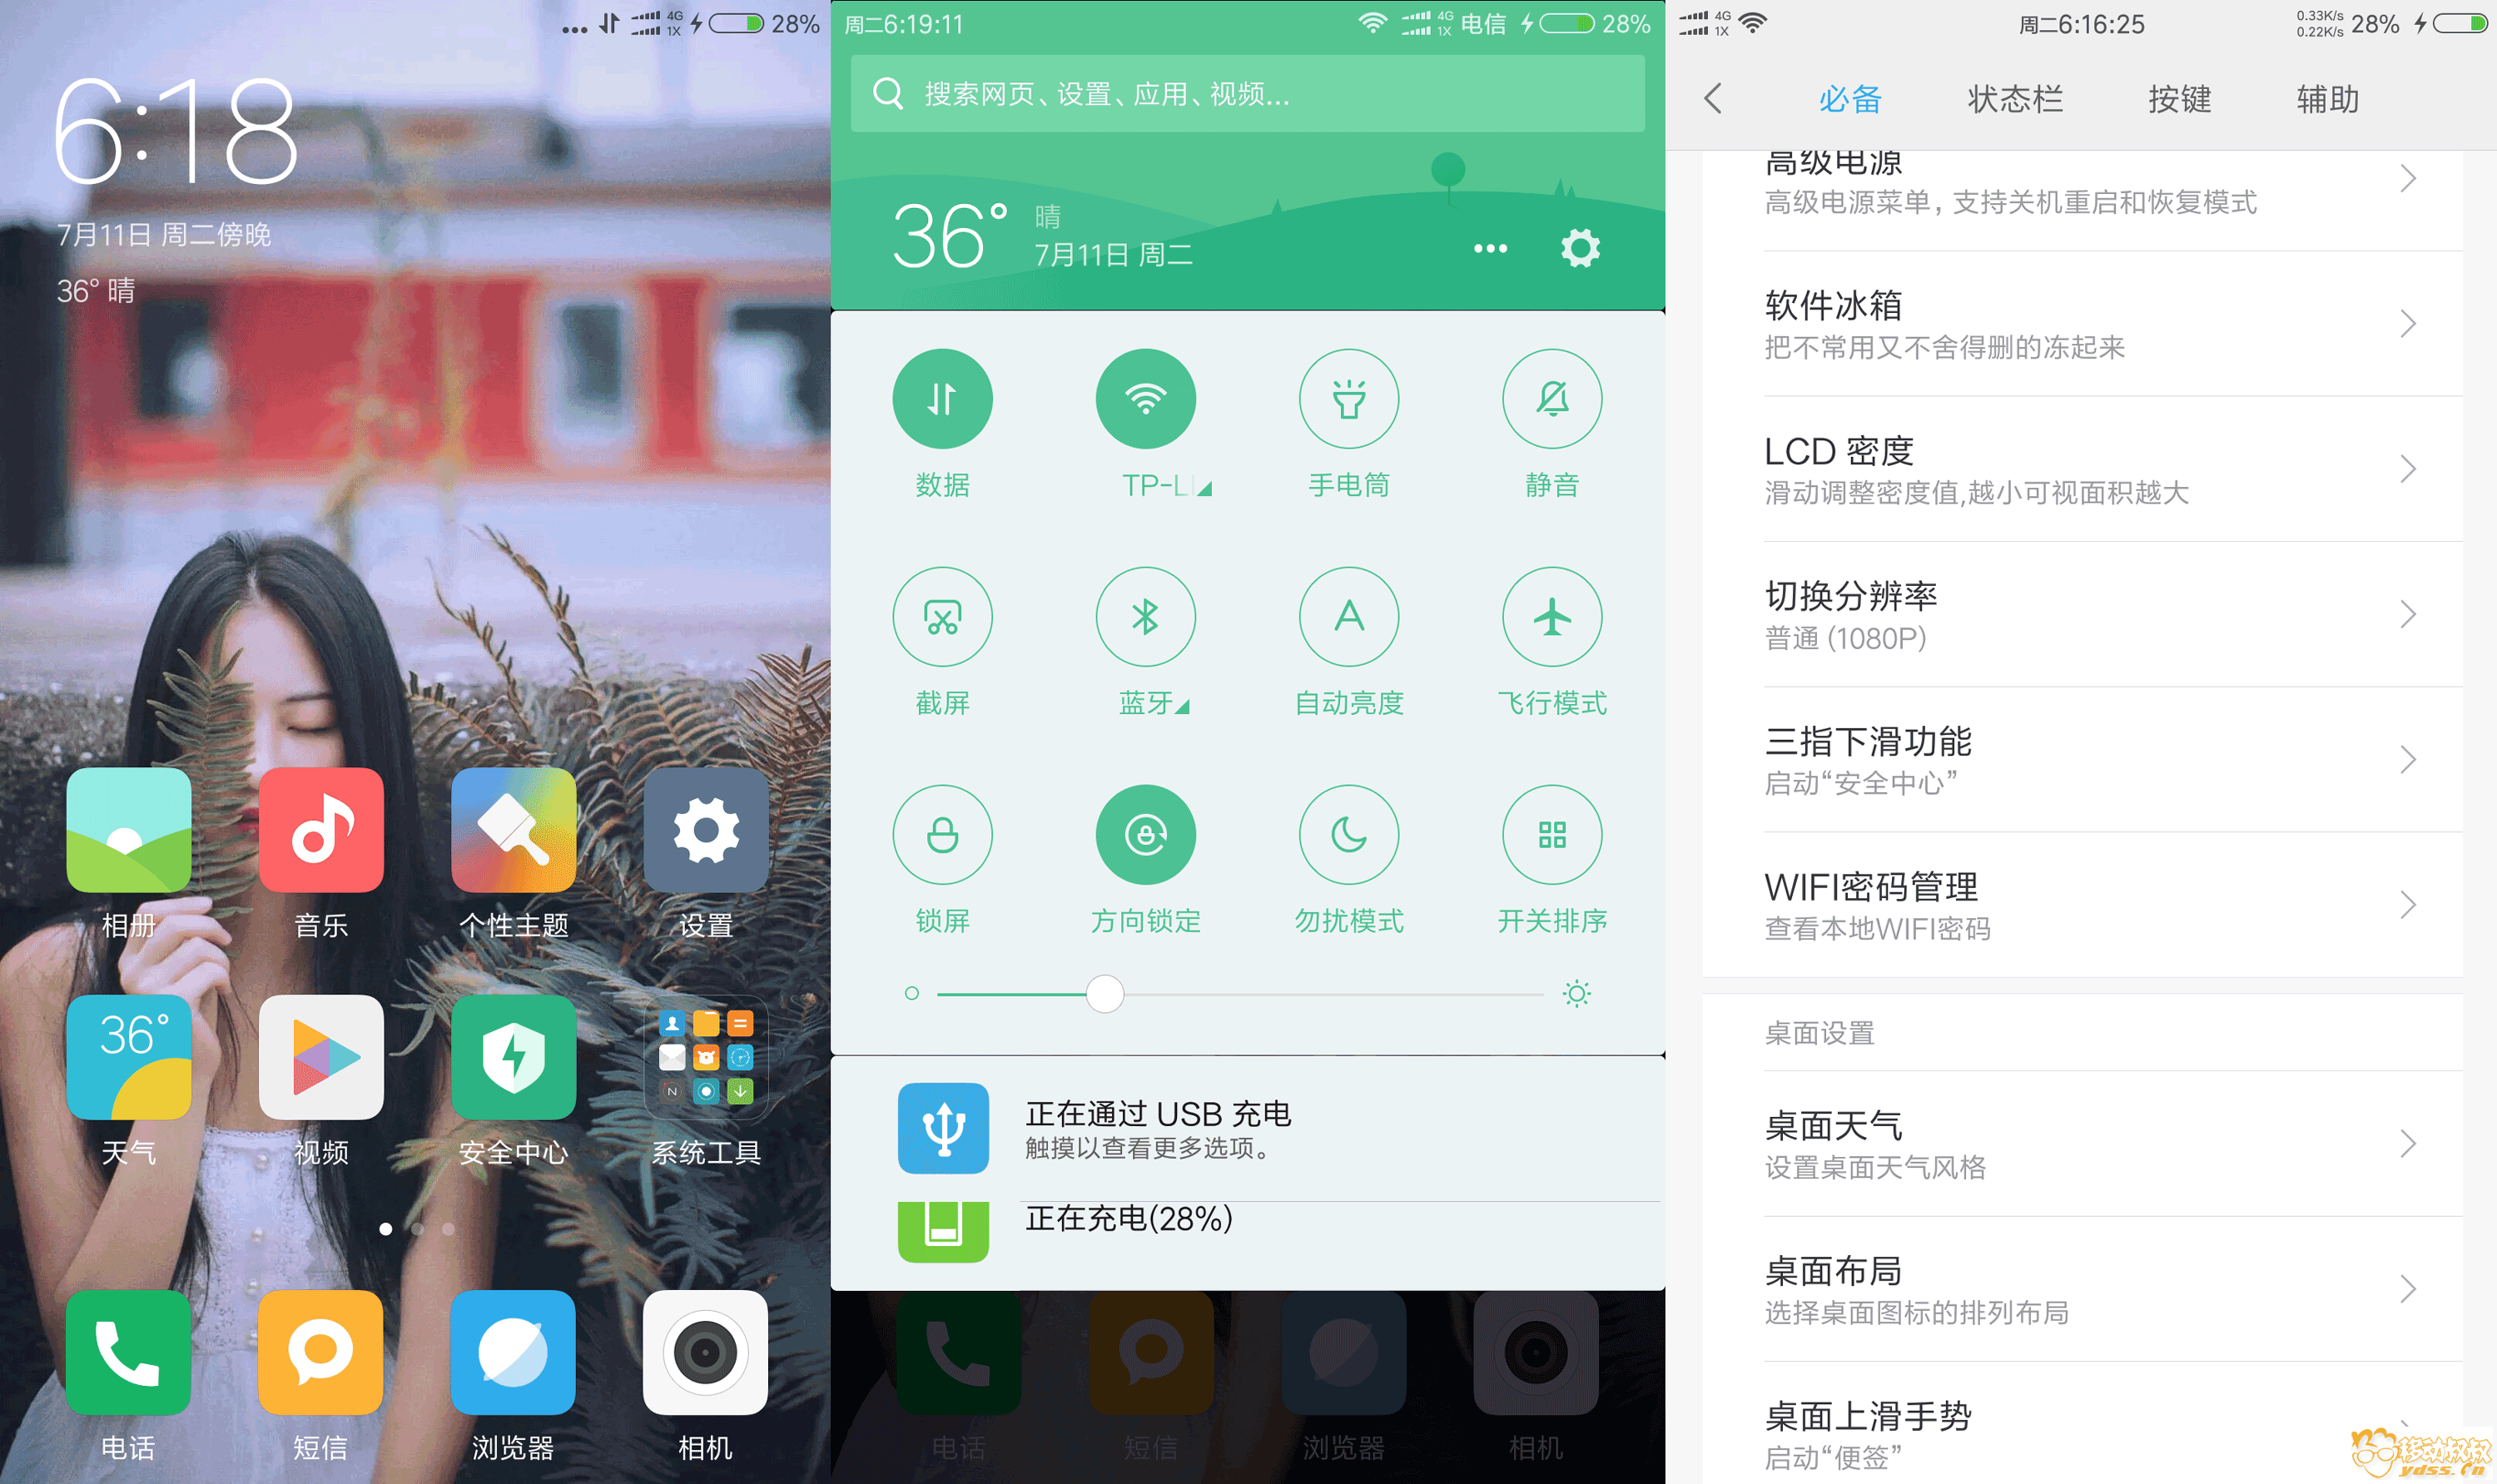 Screenshot_2017-07-11-18-18-47-549_com.miui.png